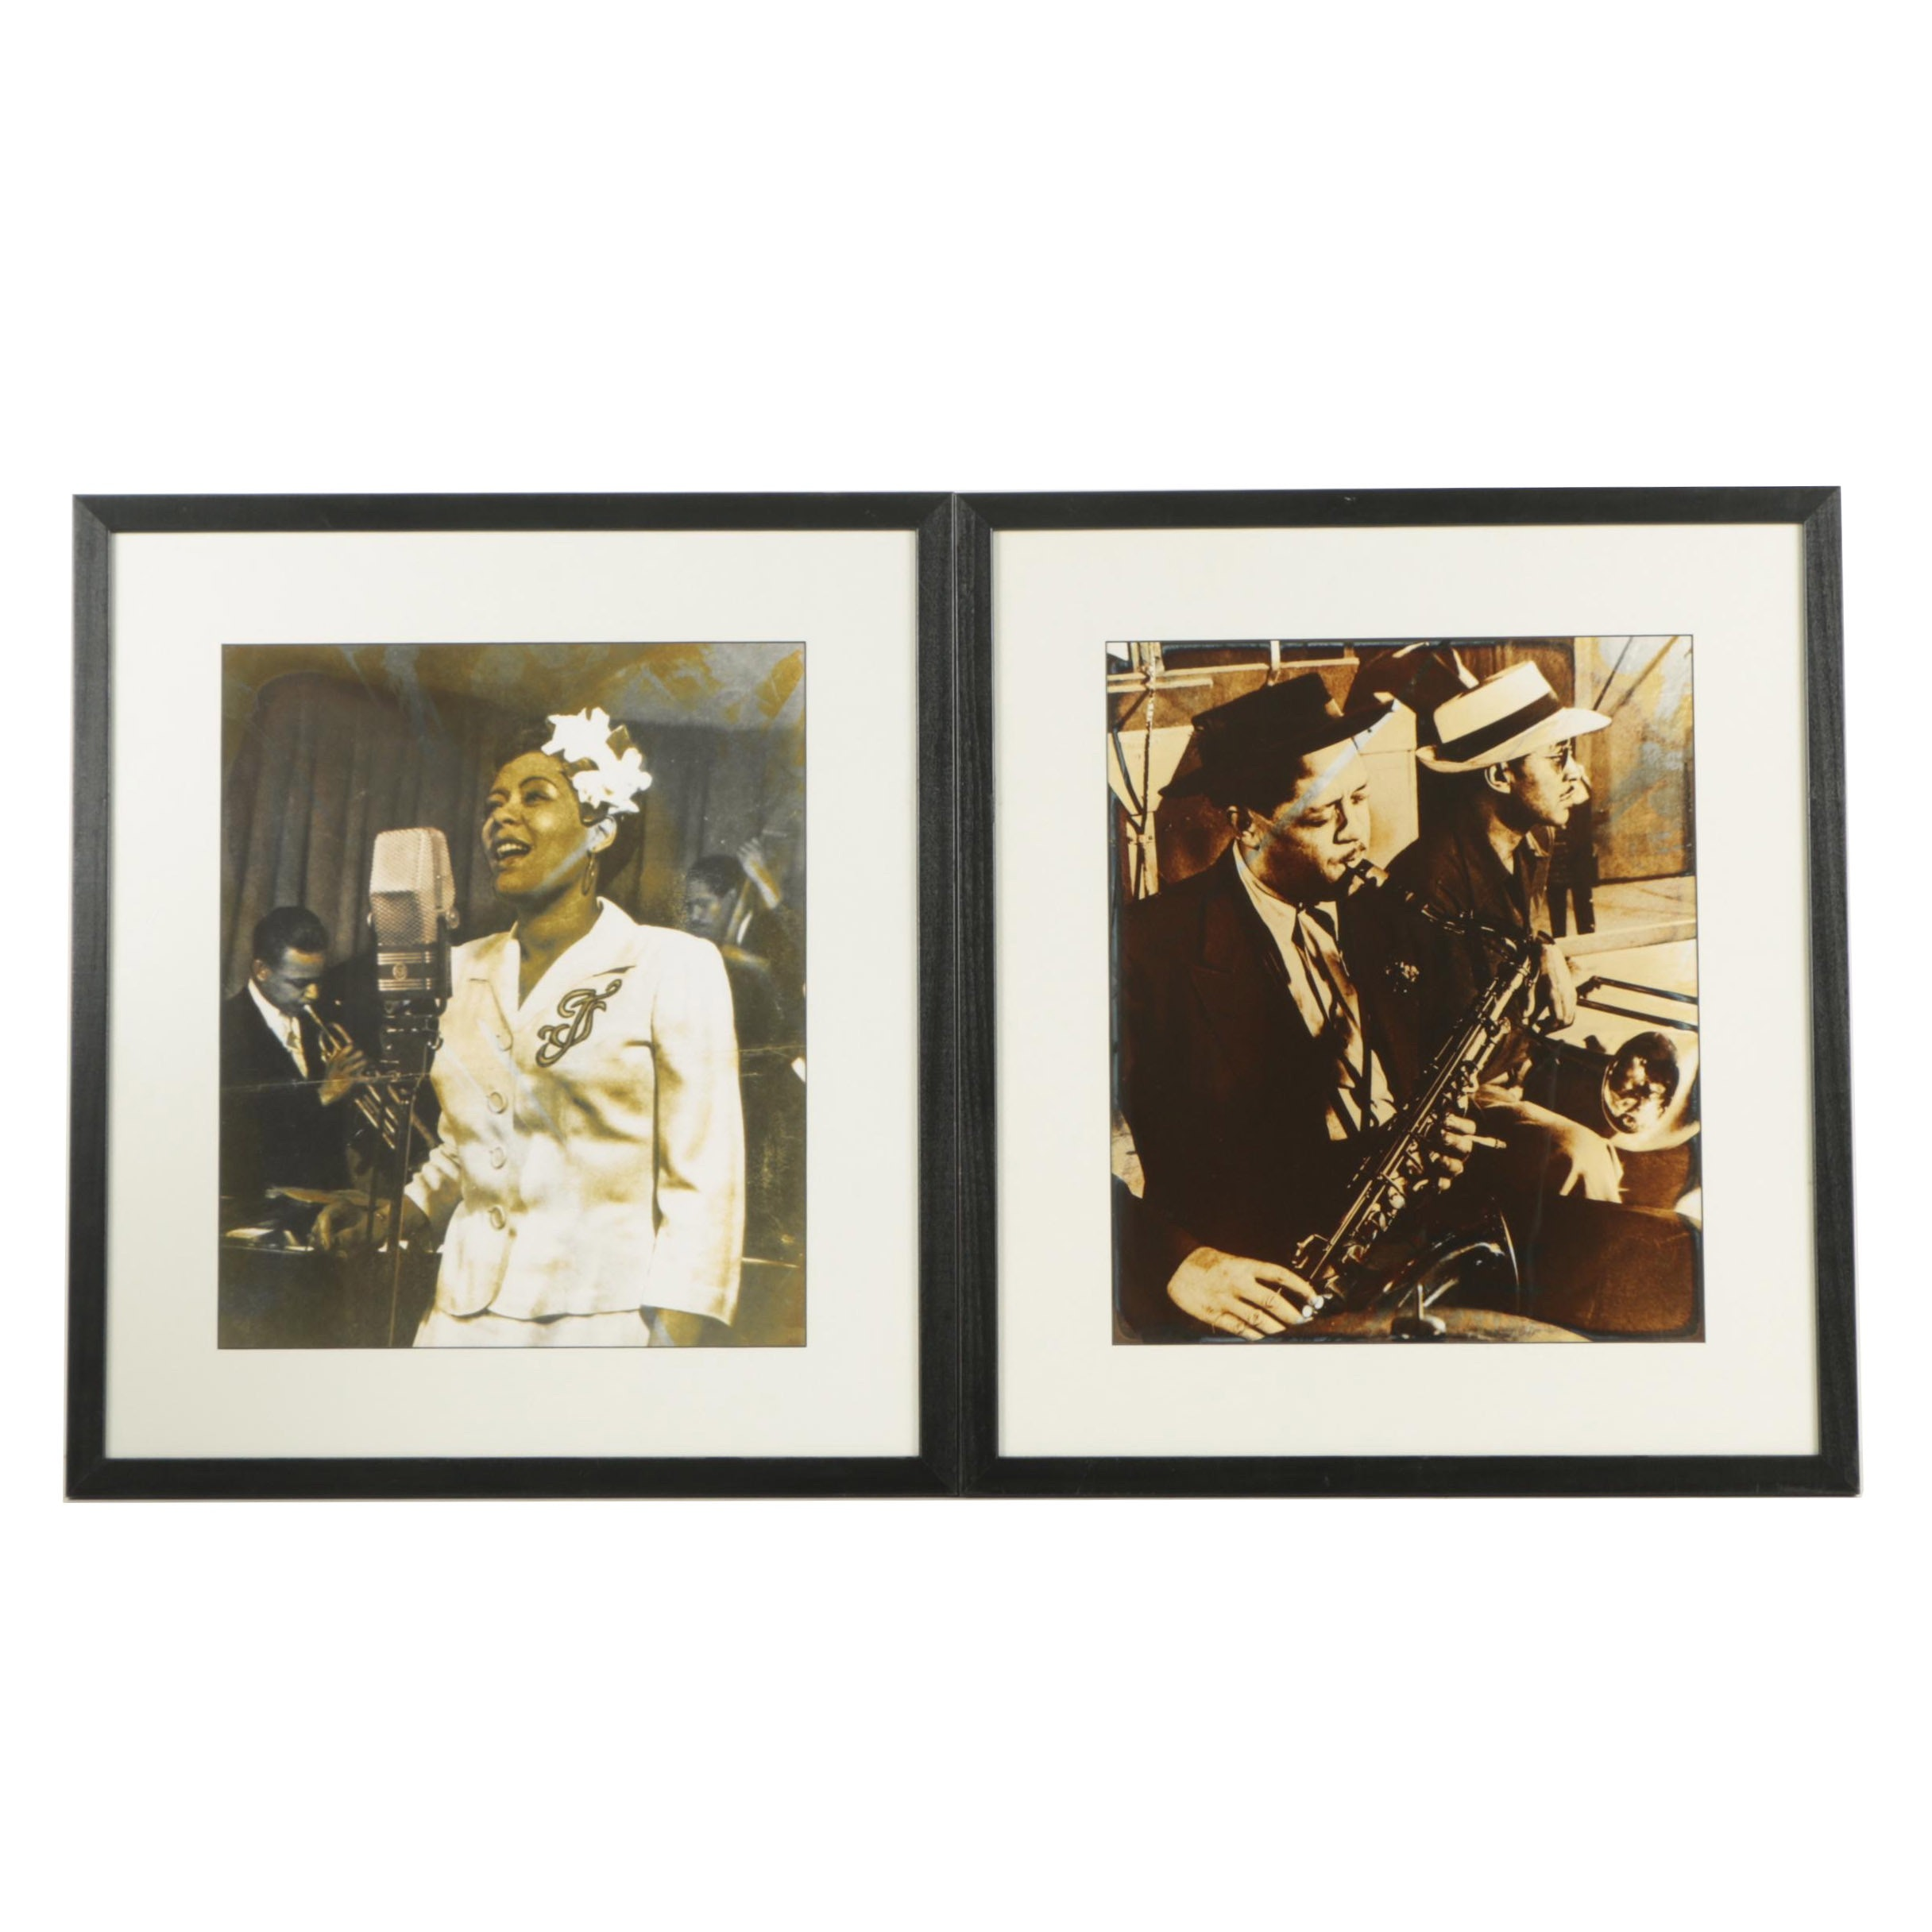 Silver Print Portraits of Billie Holiday and Lester Young